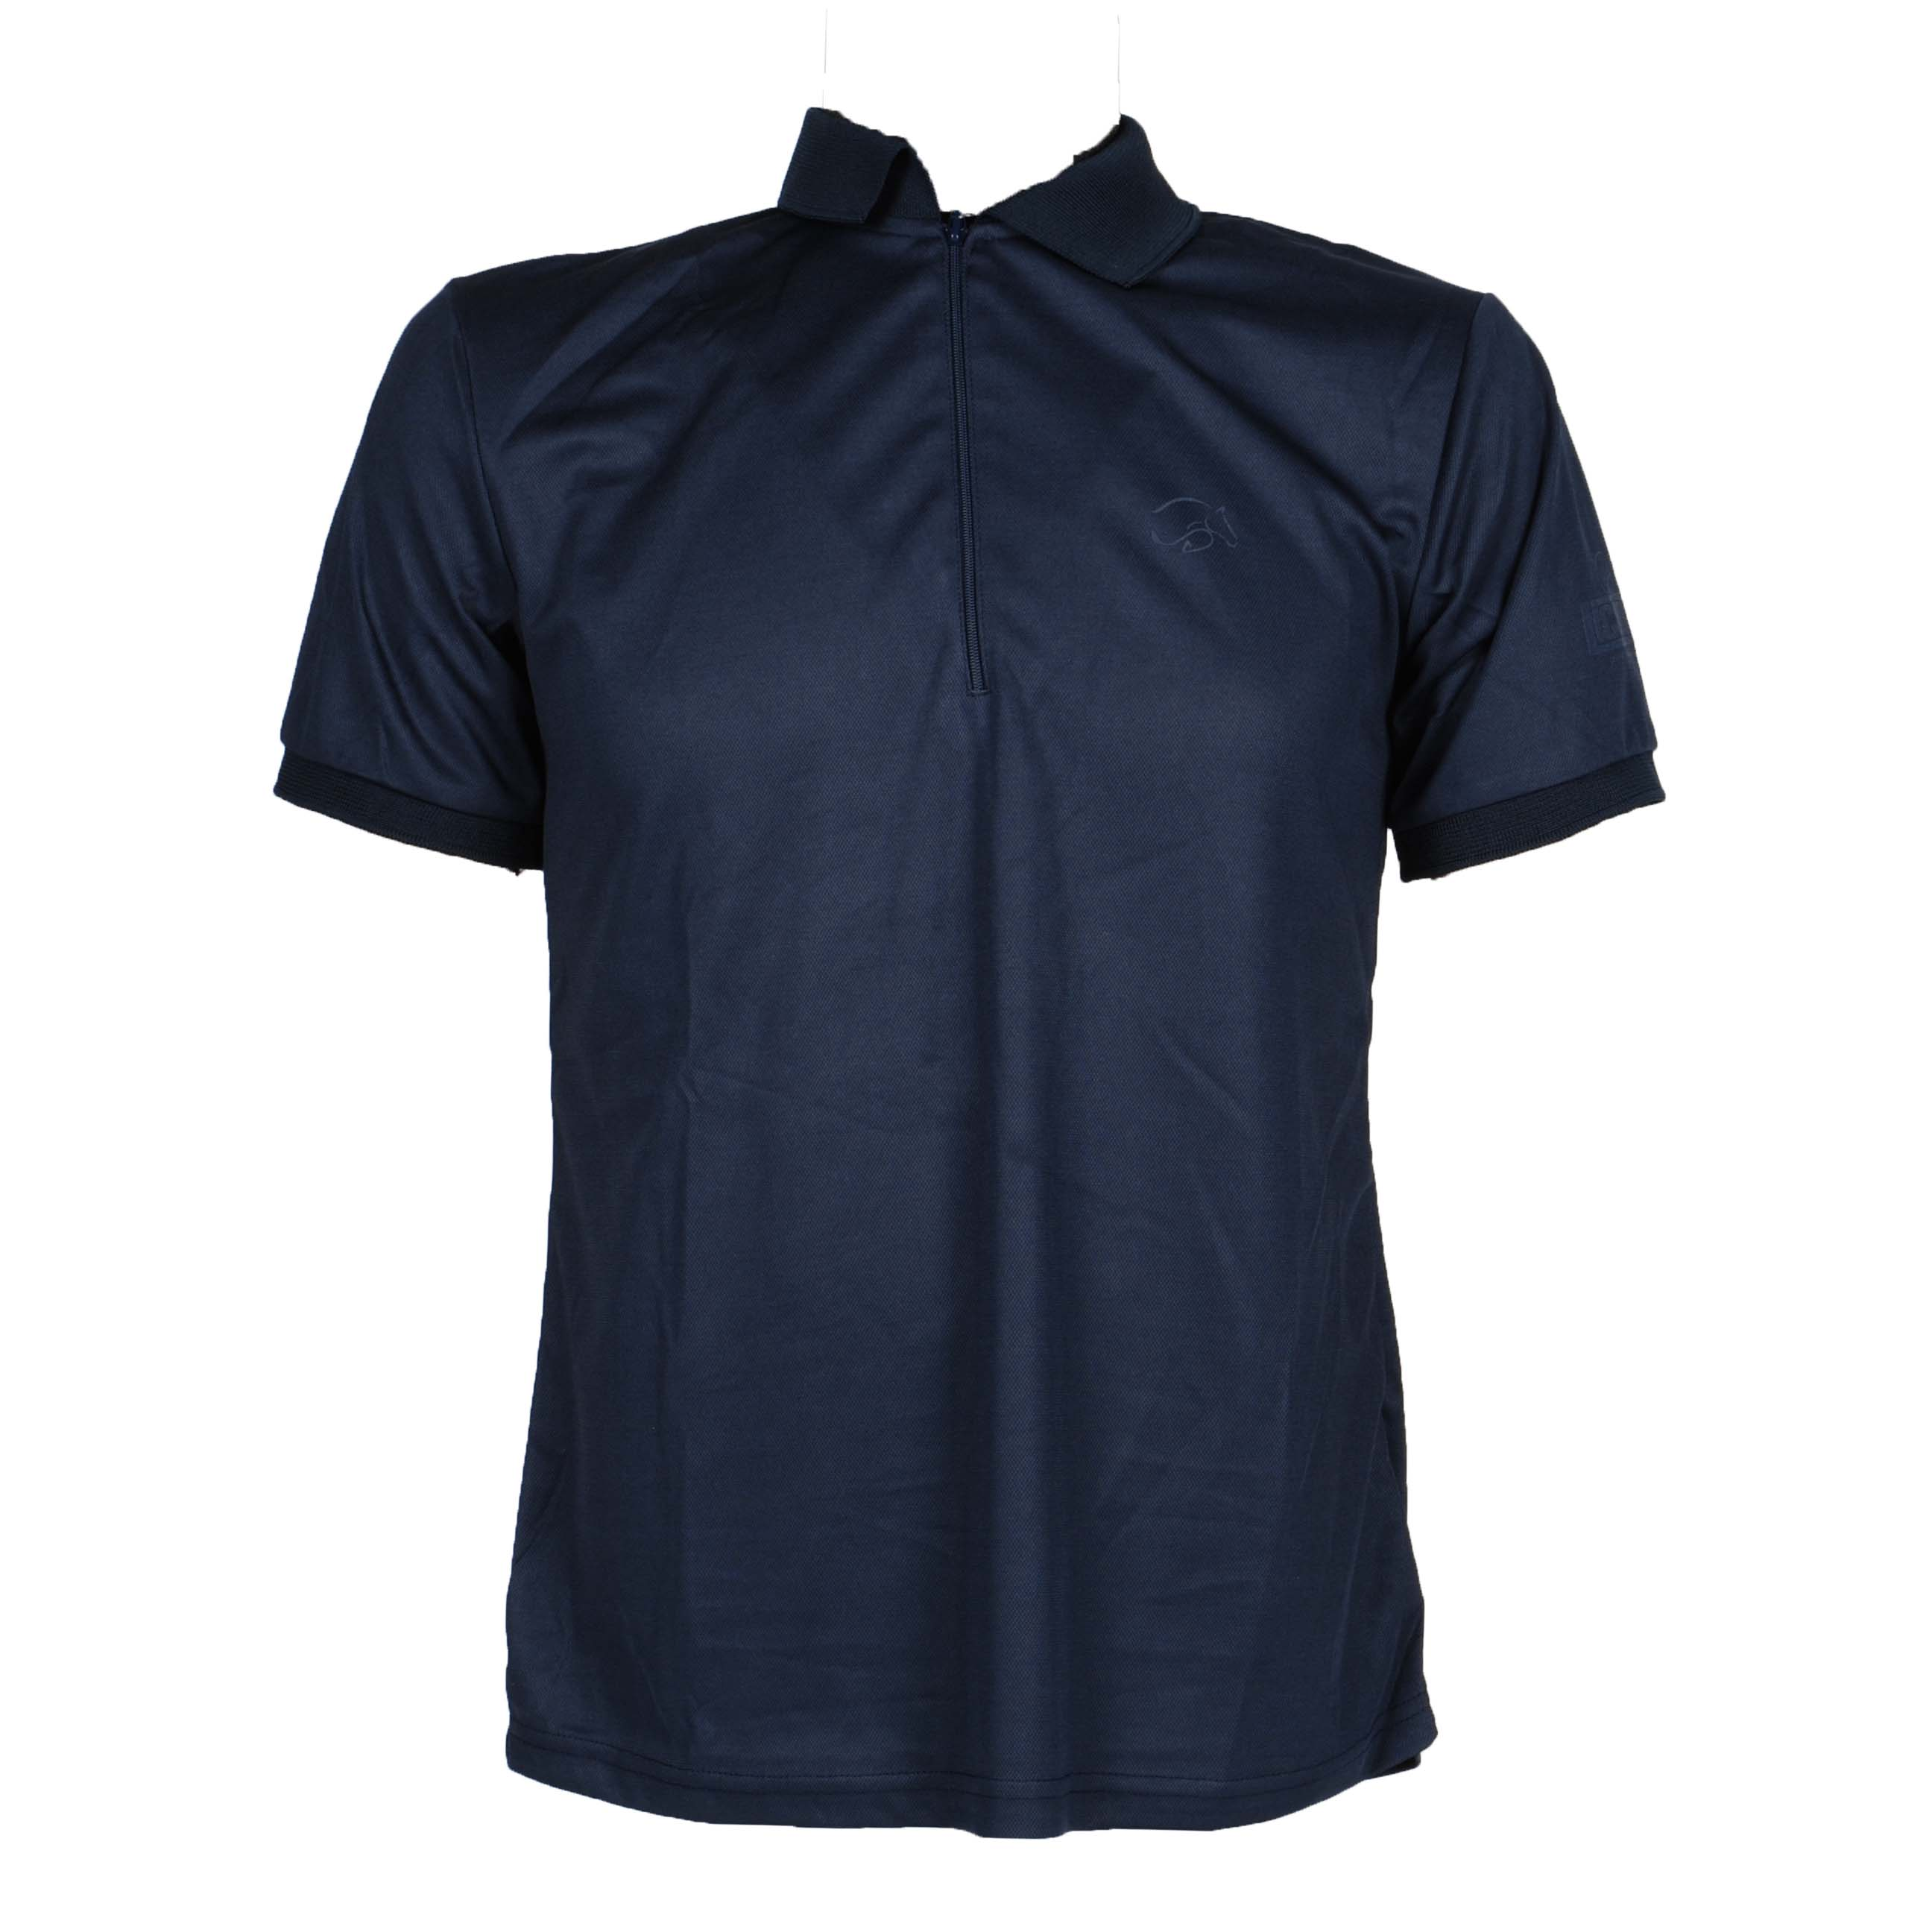 Harrys Horse polo Liciano heren donkerblauw maat:xl